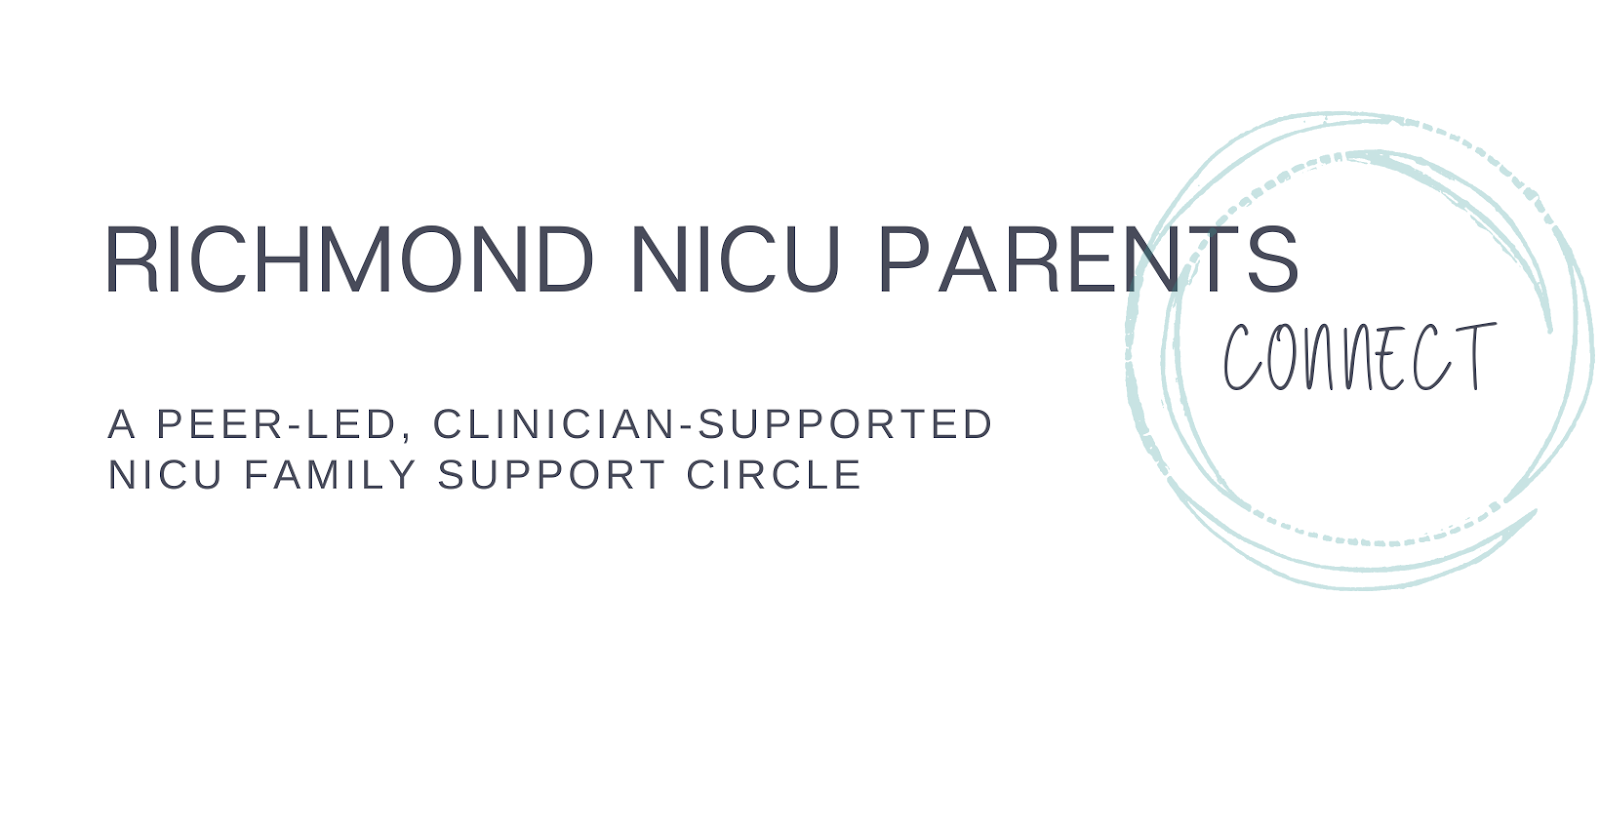 Richmond NICU Parents